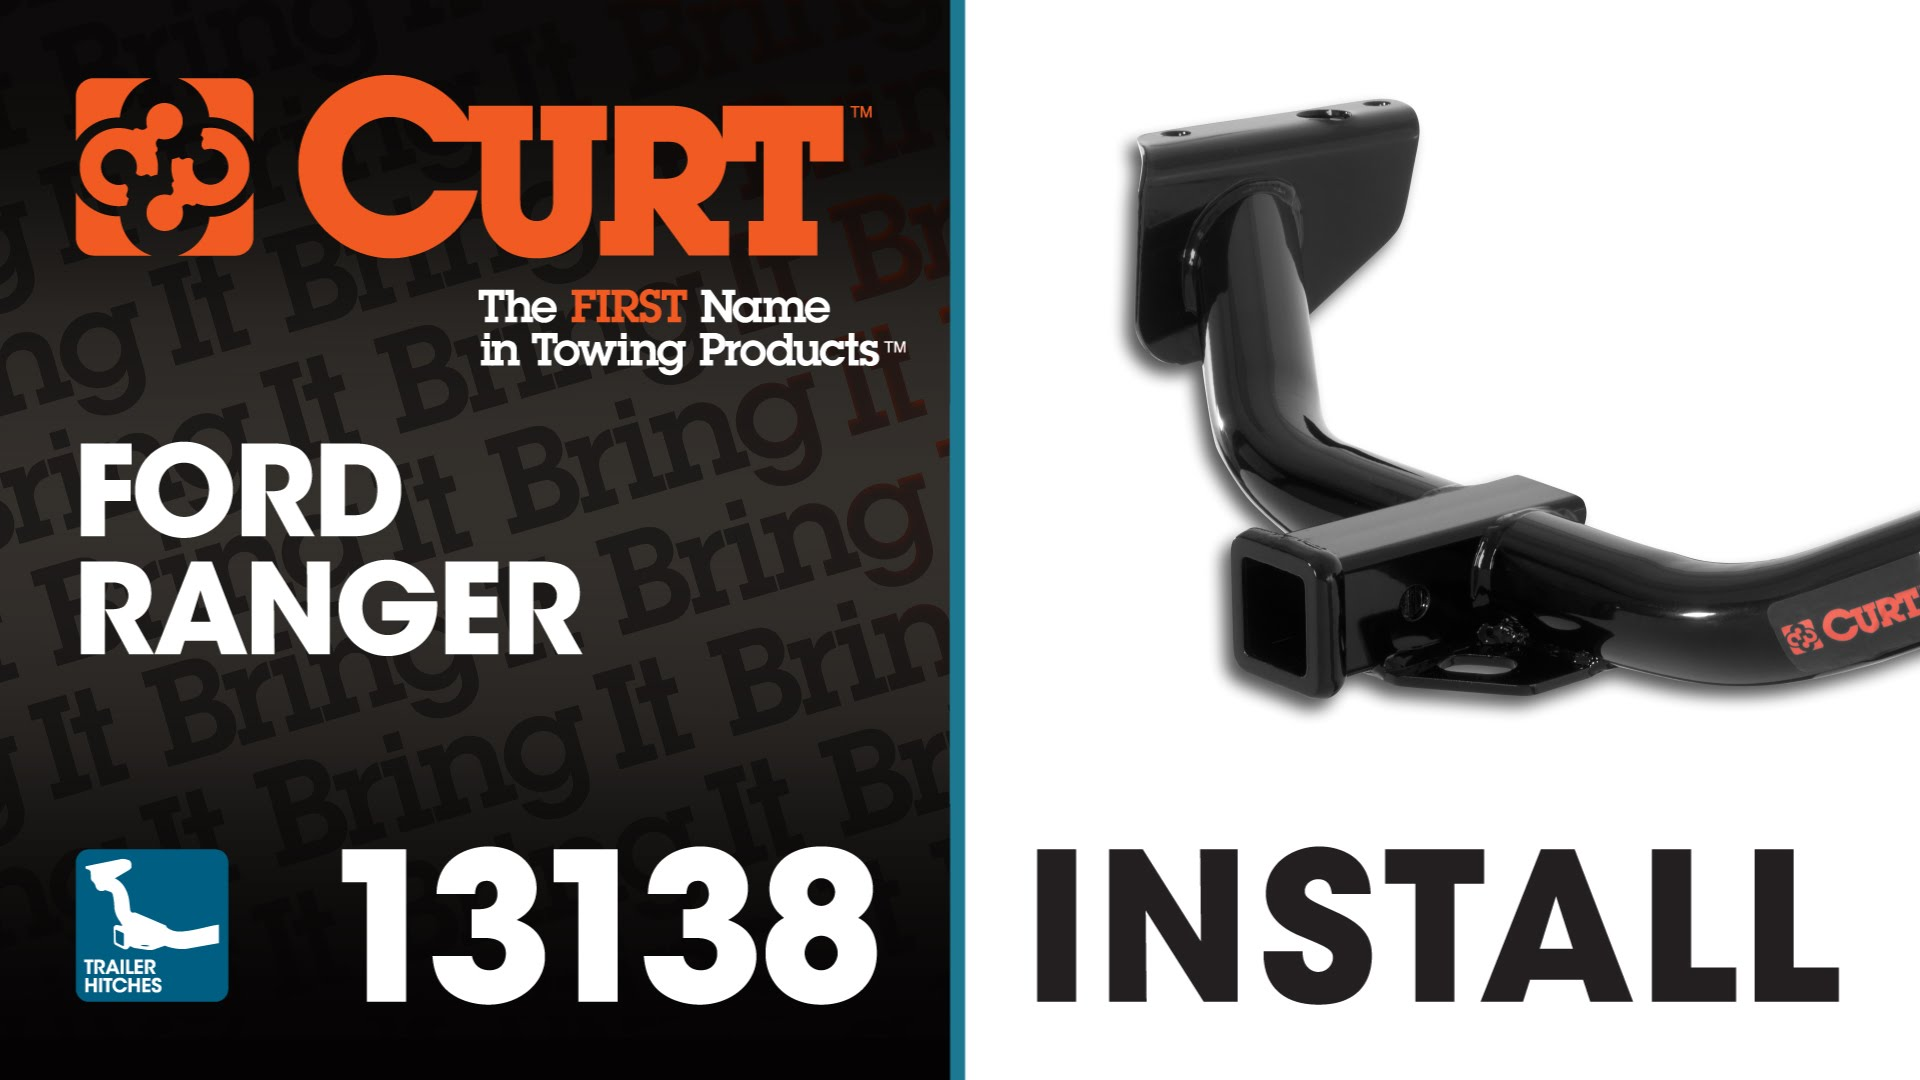 Trailer Hitch Install CURT 13138 on a Ford Ranger